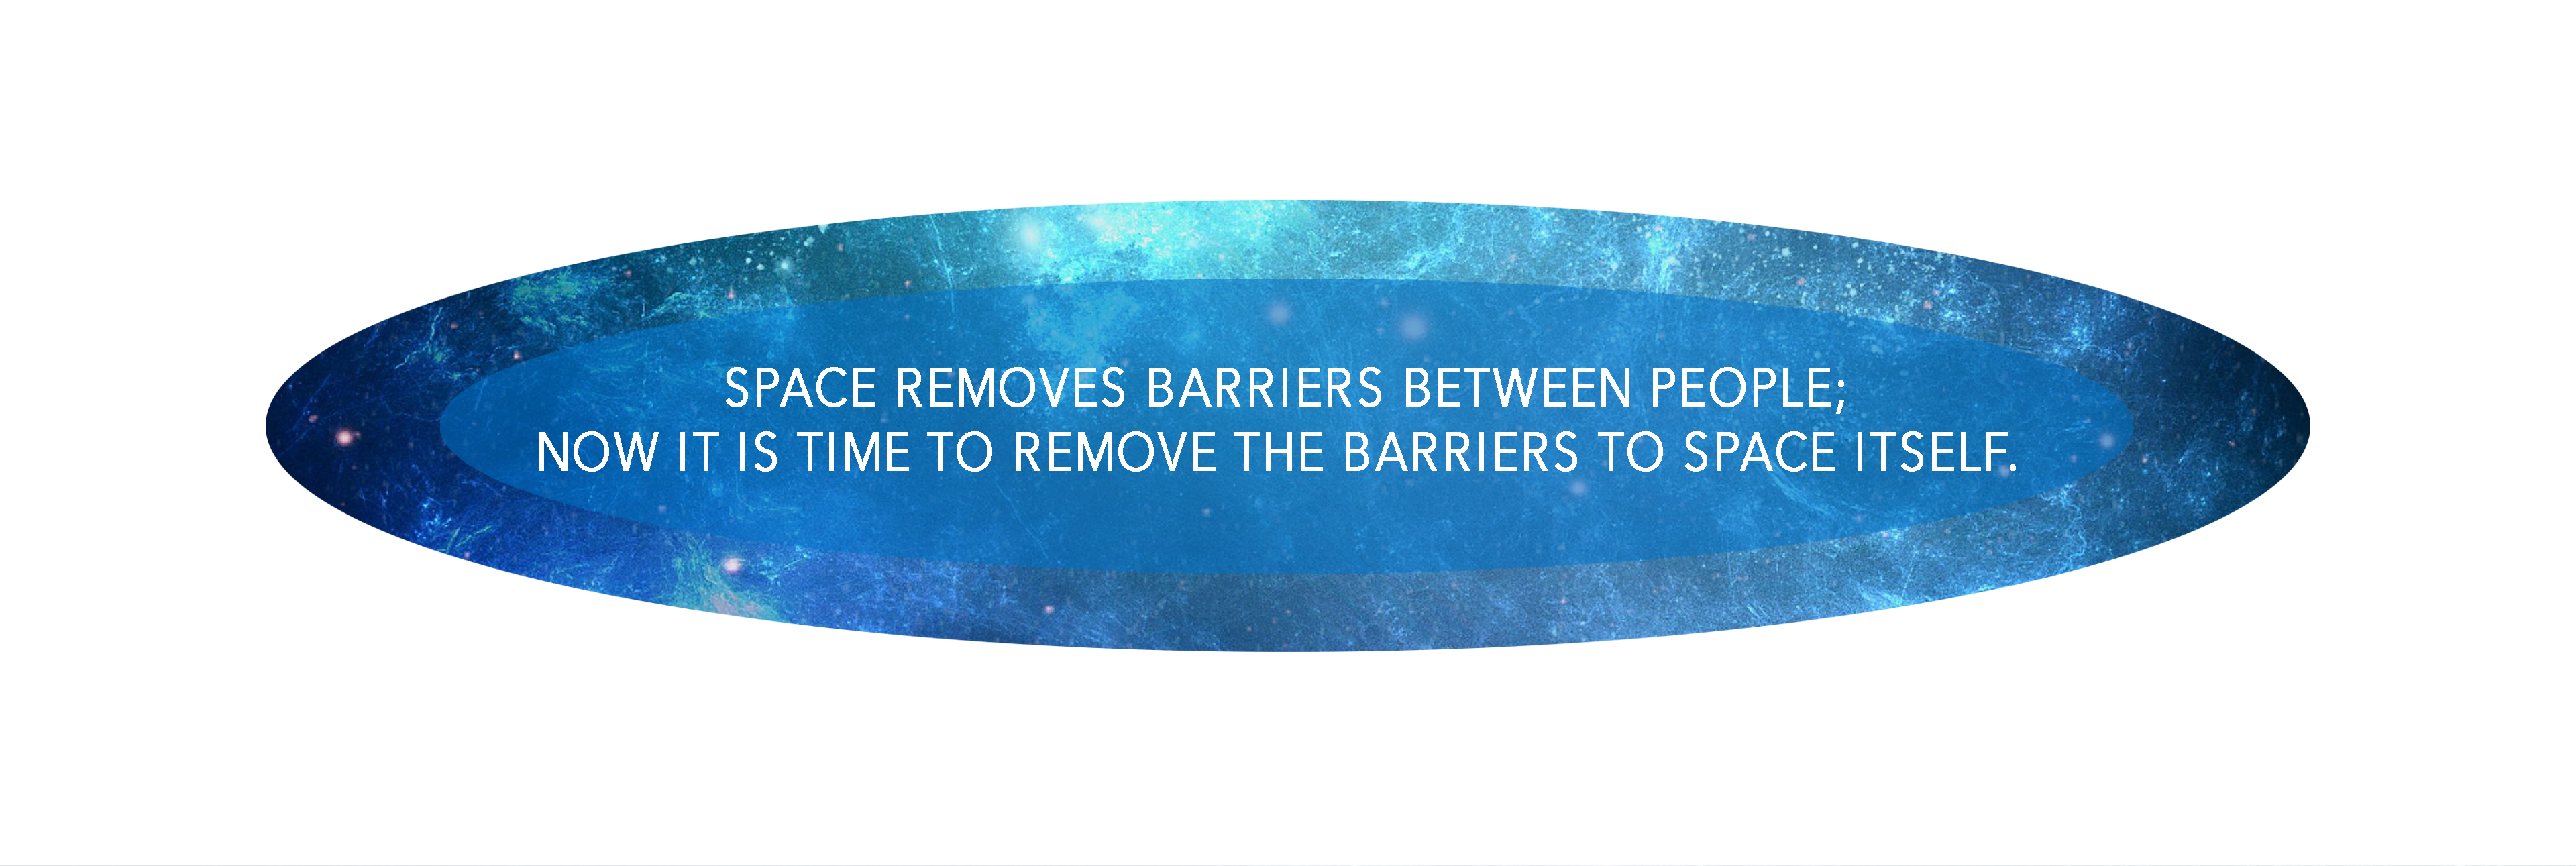 Space Removes Barriers between people. Now it time to remove the barriers from space.